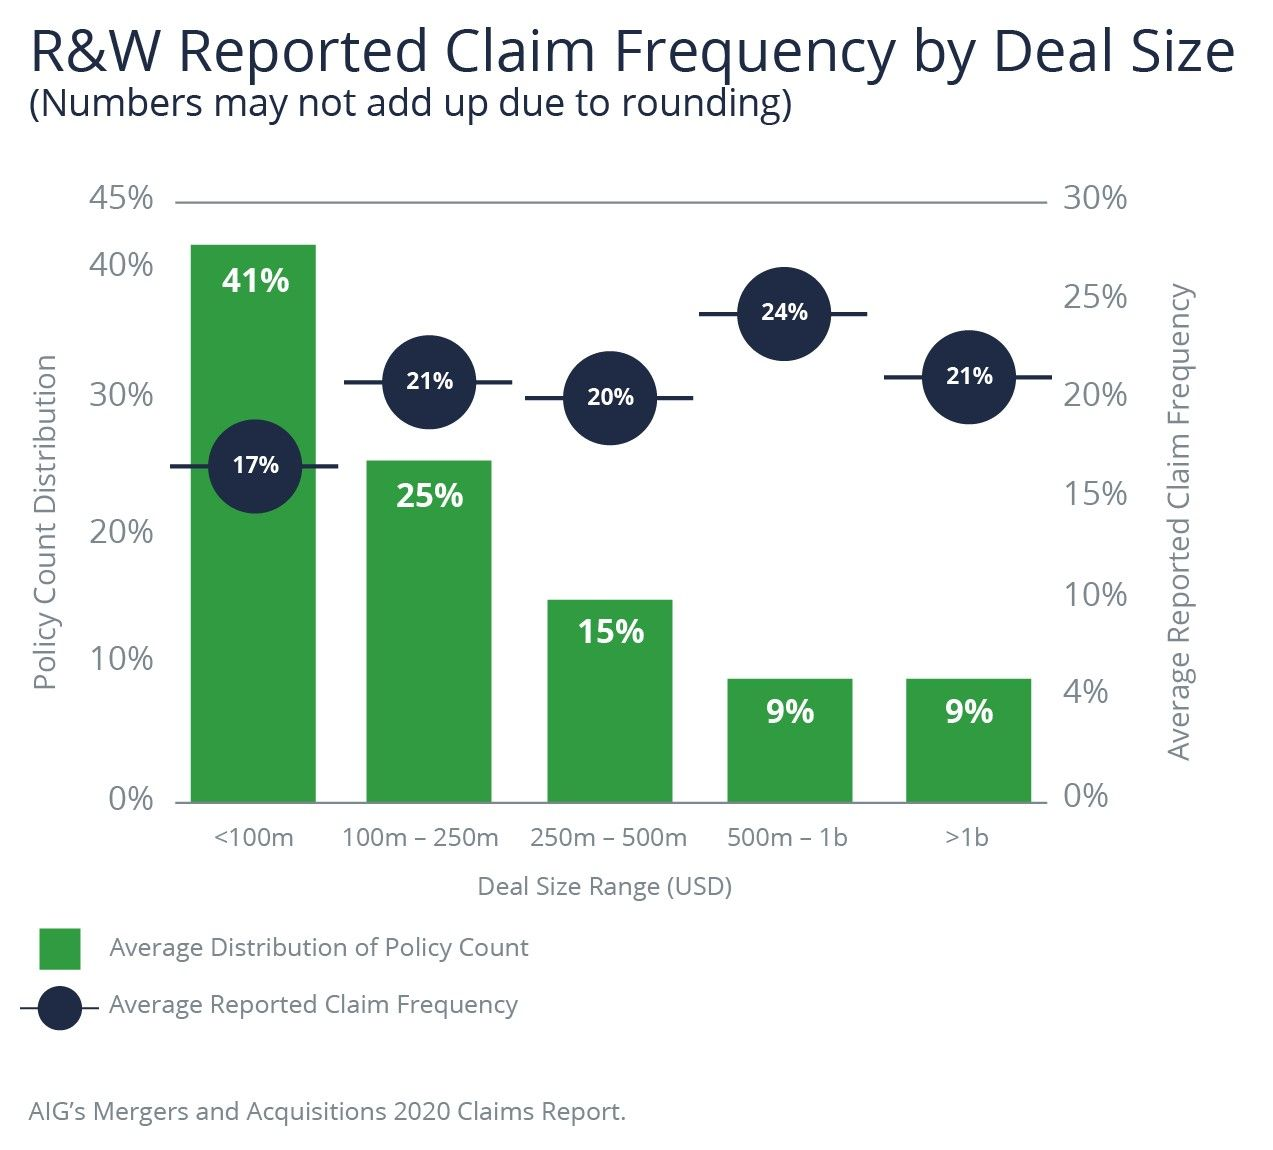 R&W Reported Claim Frequency by Deal Size